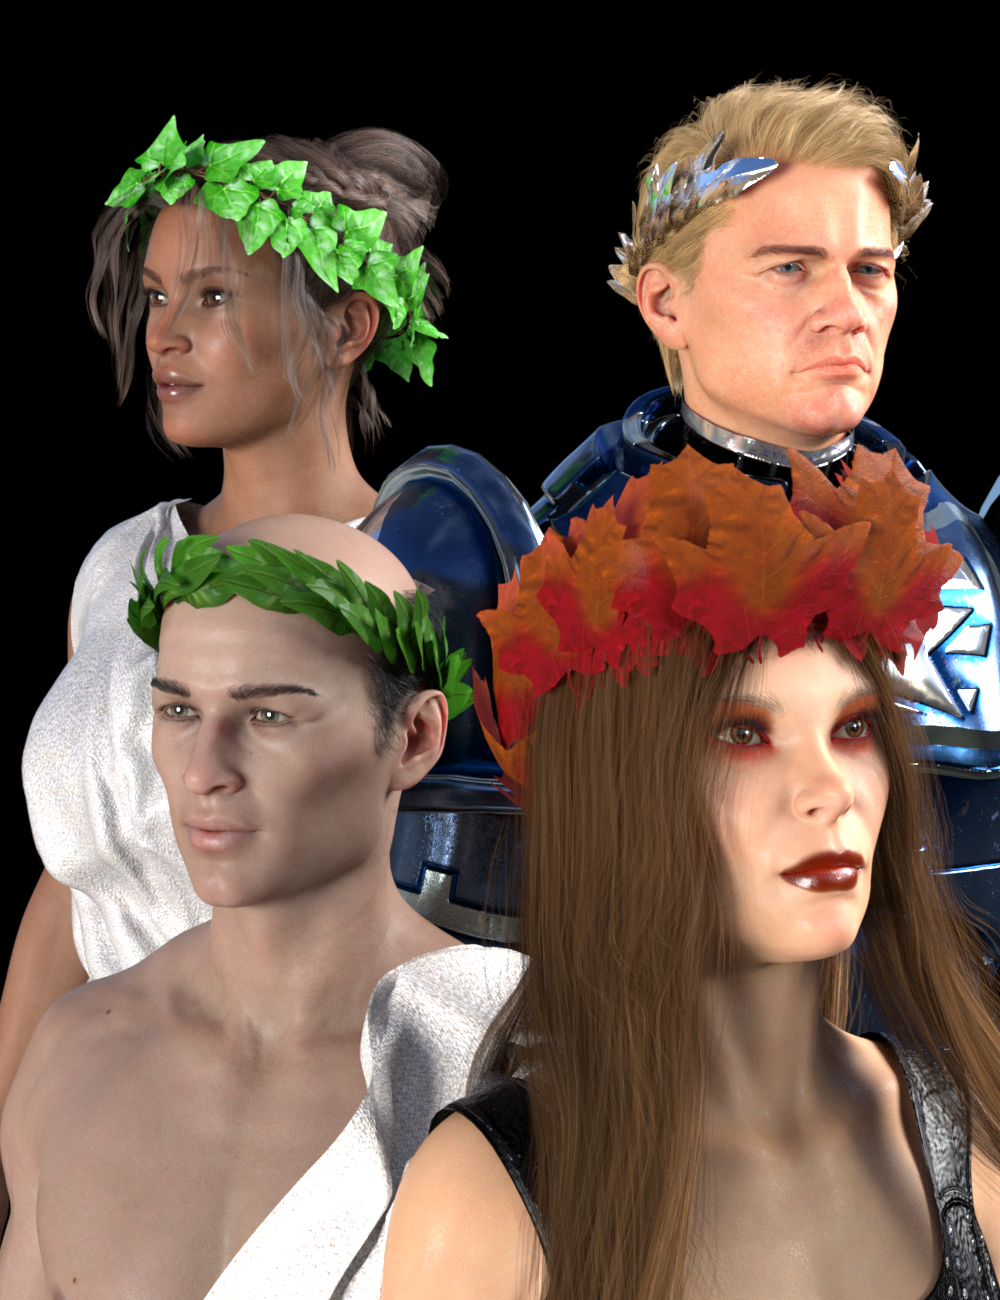 SY Leafy Crowns for Genesis 8 and 8.1 by: Sickleyield, 3D Models by Daz 3D